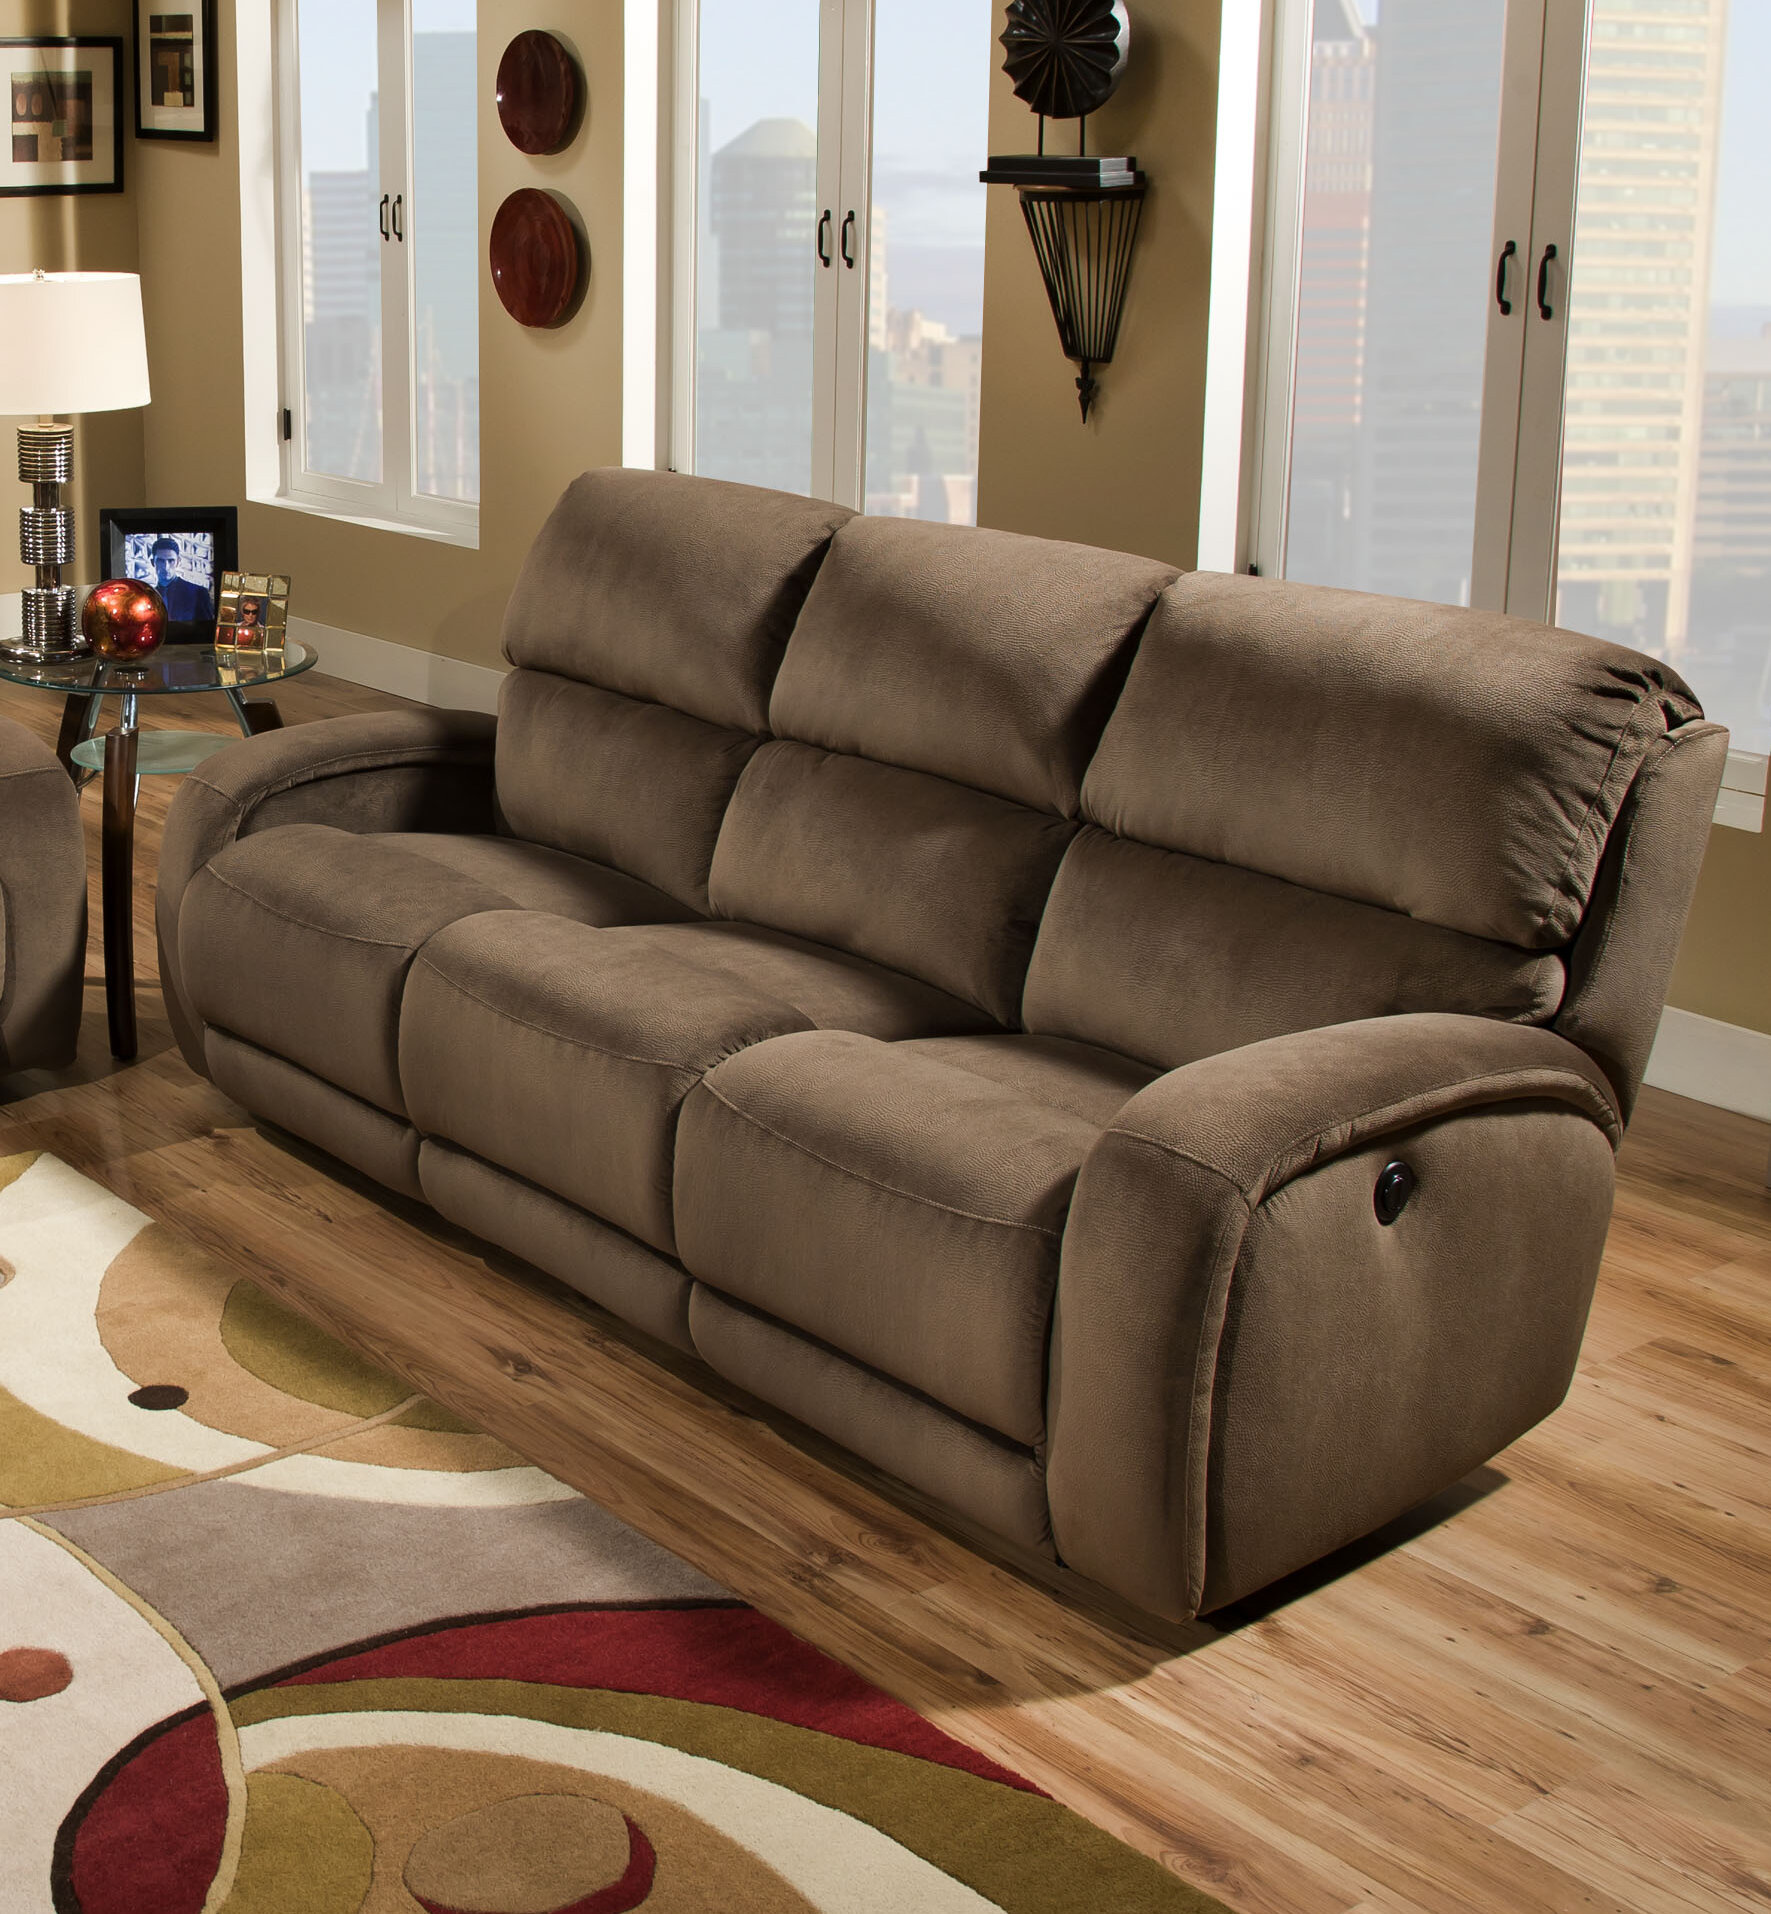 Fandangou0027u0027 Double Reclining Sofa. By Southern Motion